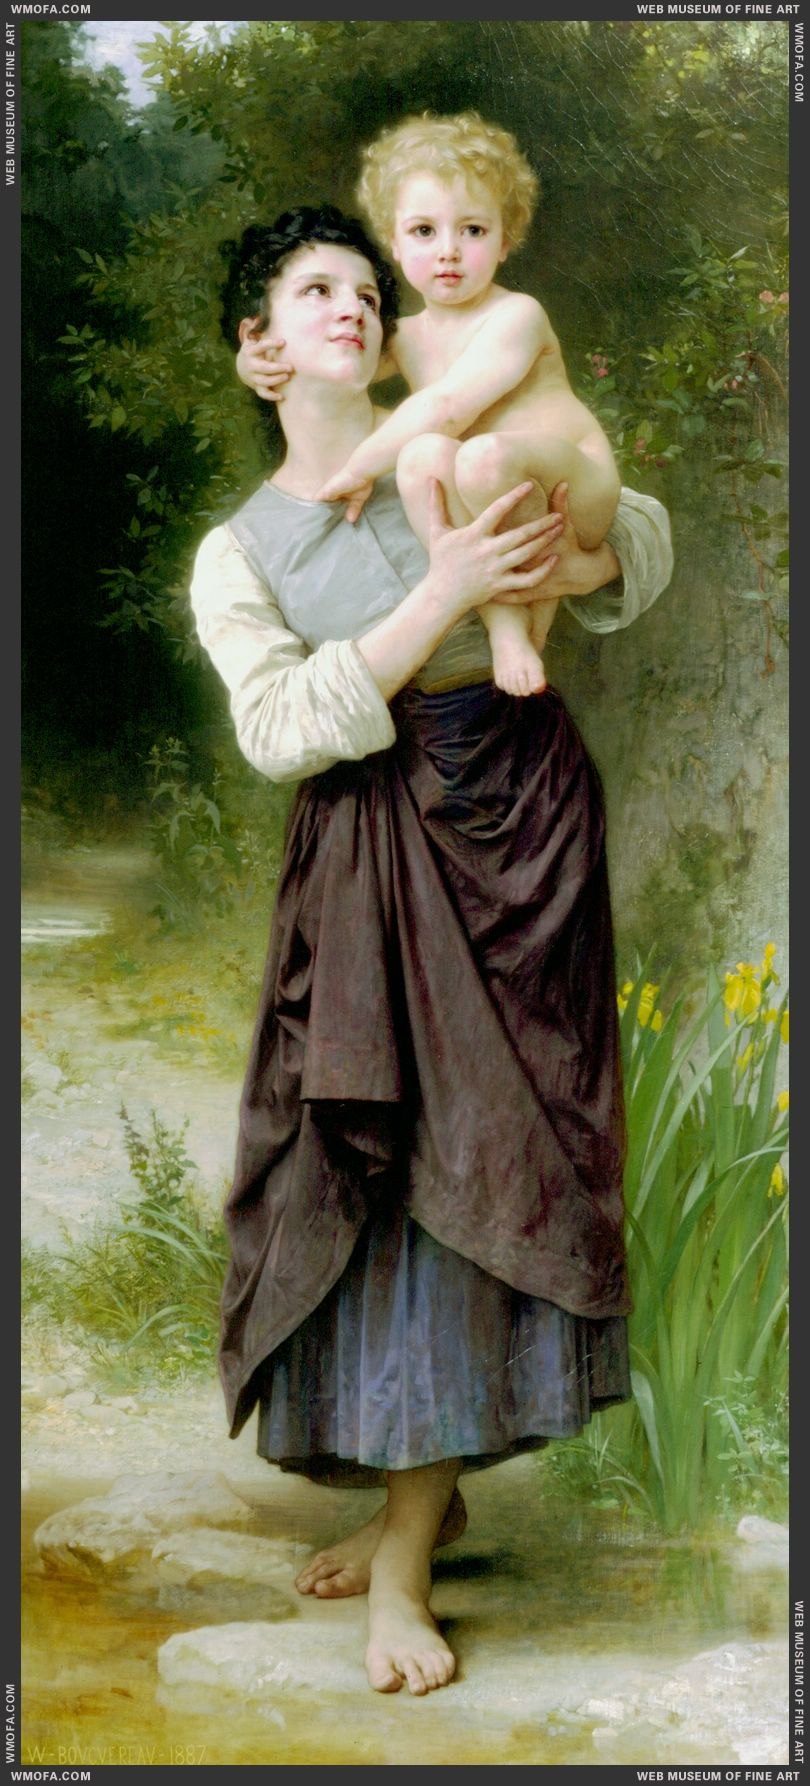 Brother and Sister 1887 by Bouguereau, William